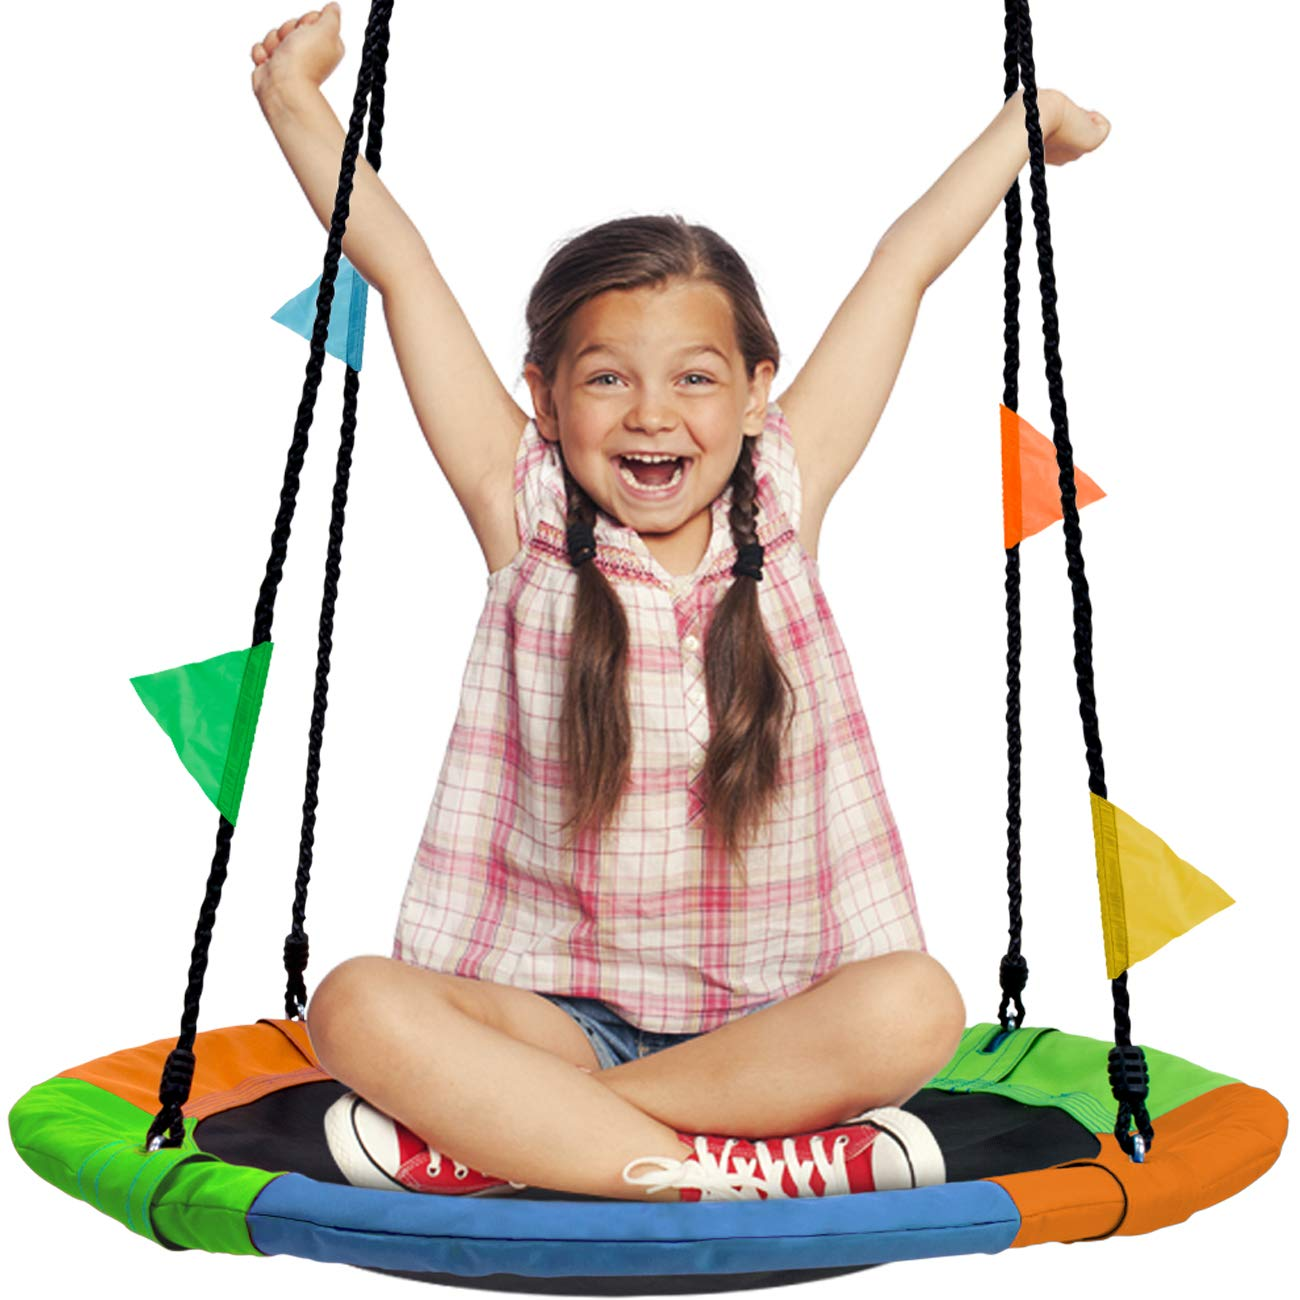 Sorbus Saucer Tree Swing in Multi-Color Rainbow - Kids Indoor/Outdoor Round Mat Swing - Great for Tree, Swing Set, Backyard, Playground, Playroom - Accessories Included (Round - 24'') by Sorbus (Image #2)